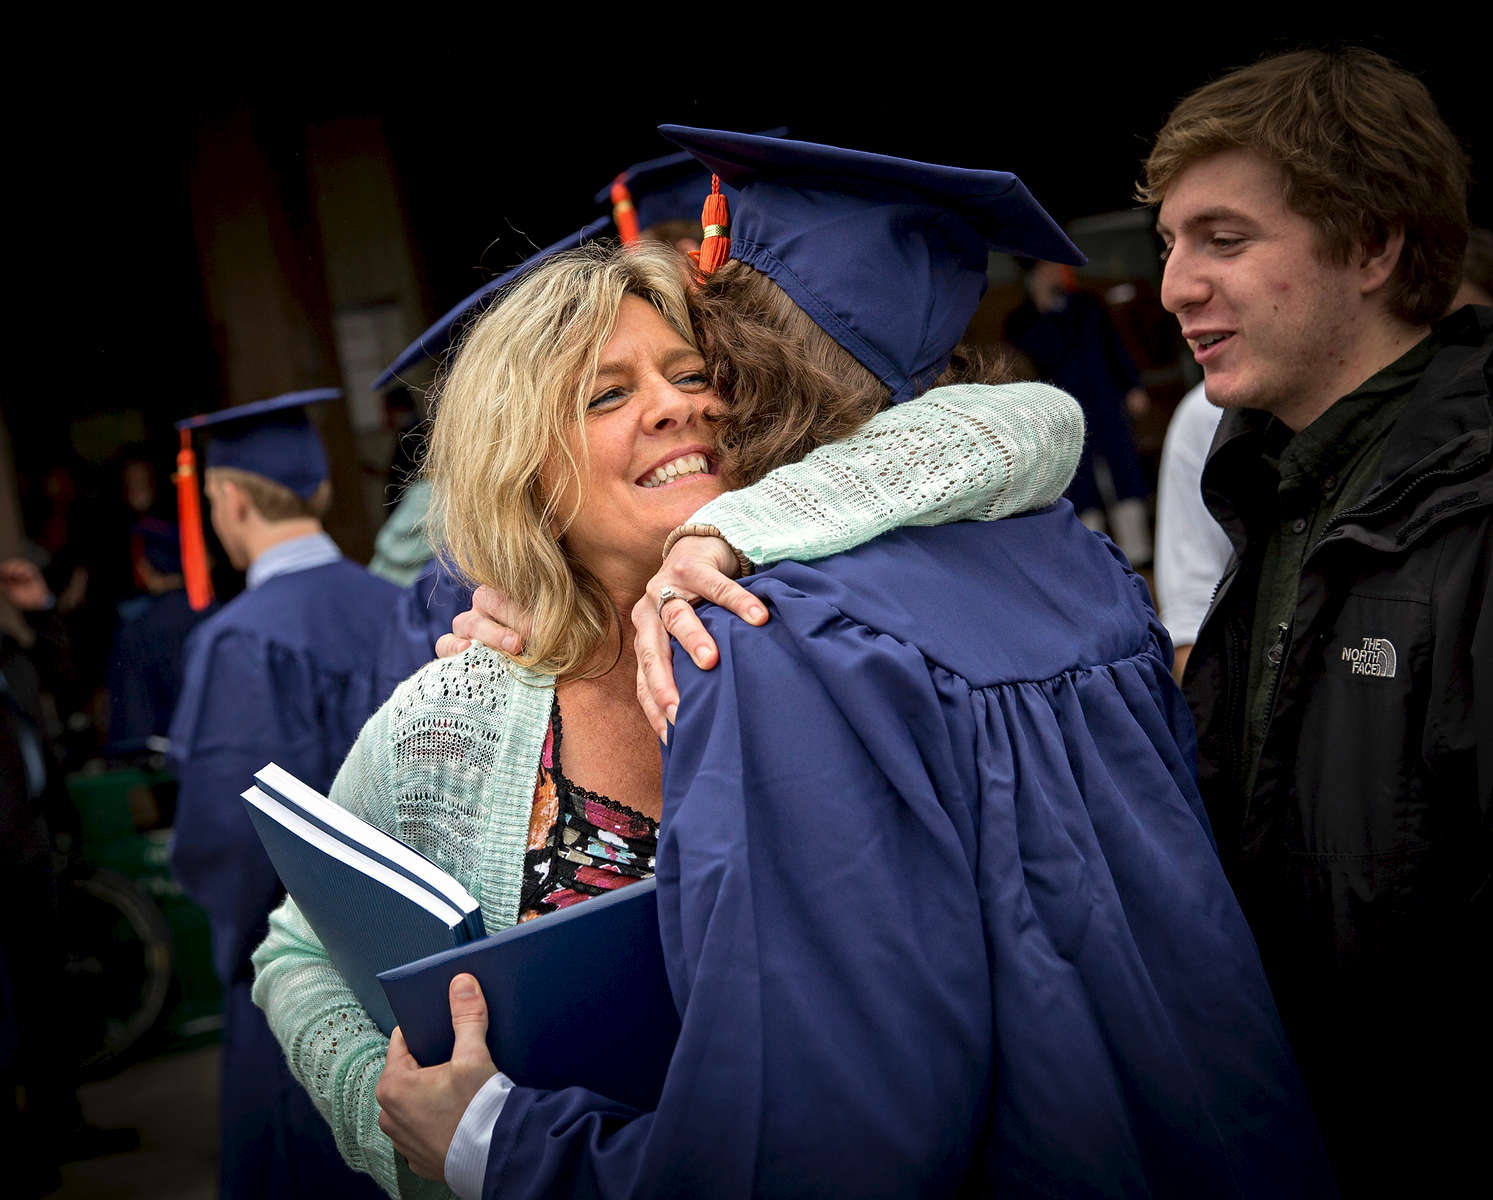 Families embrace following the UConn School of Engineering Commencement Saturday, May 6, 2017 at the Harry A. Gampel Pavilion in Storrs.